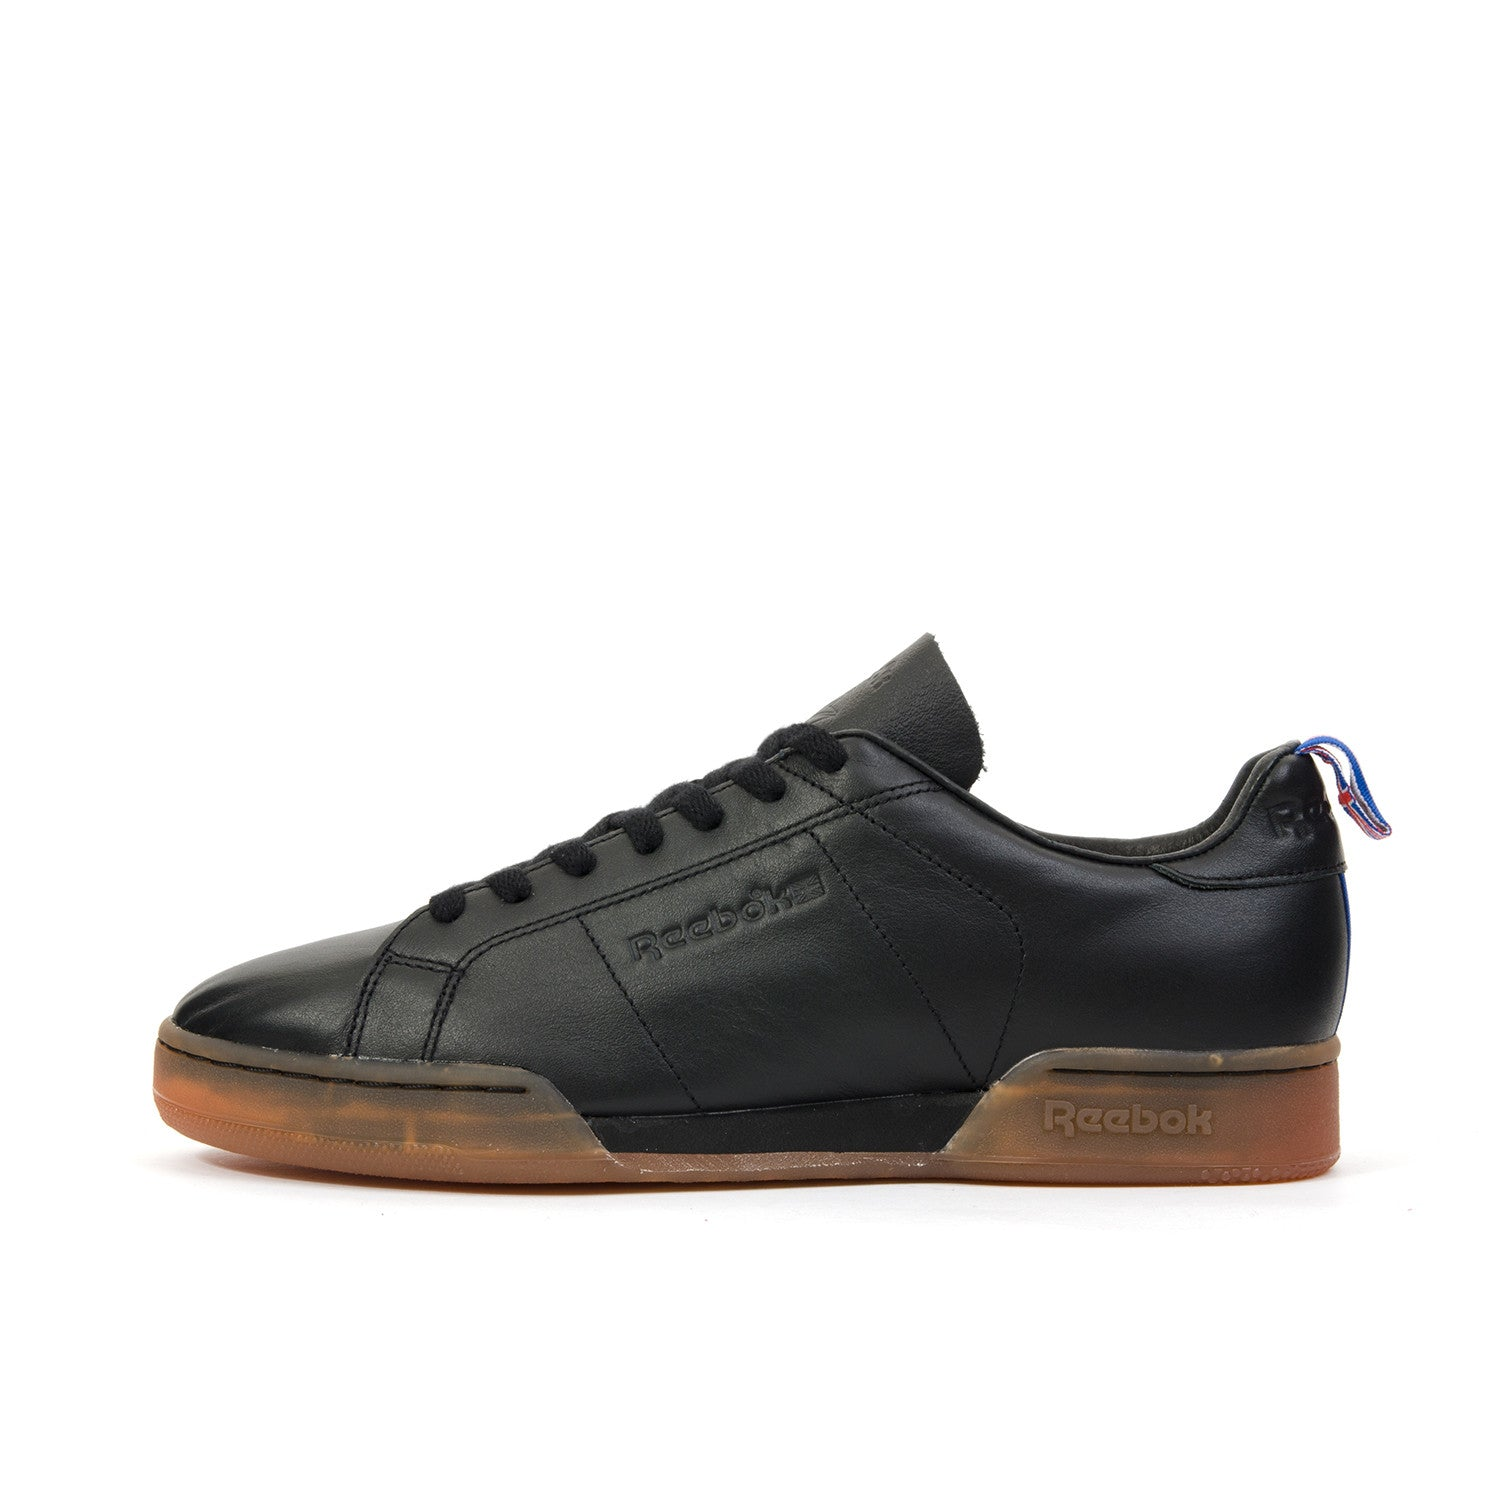 Reebok NPC ENH Gum Black/ Gum Royal - Concrete